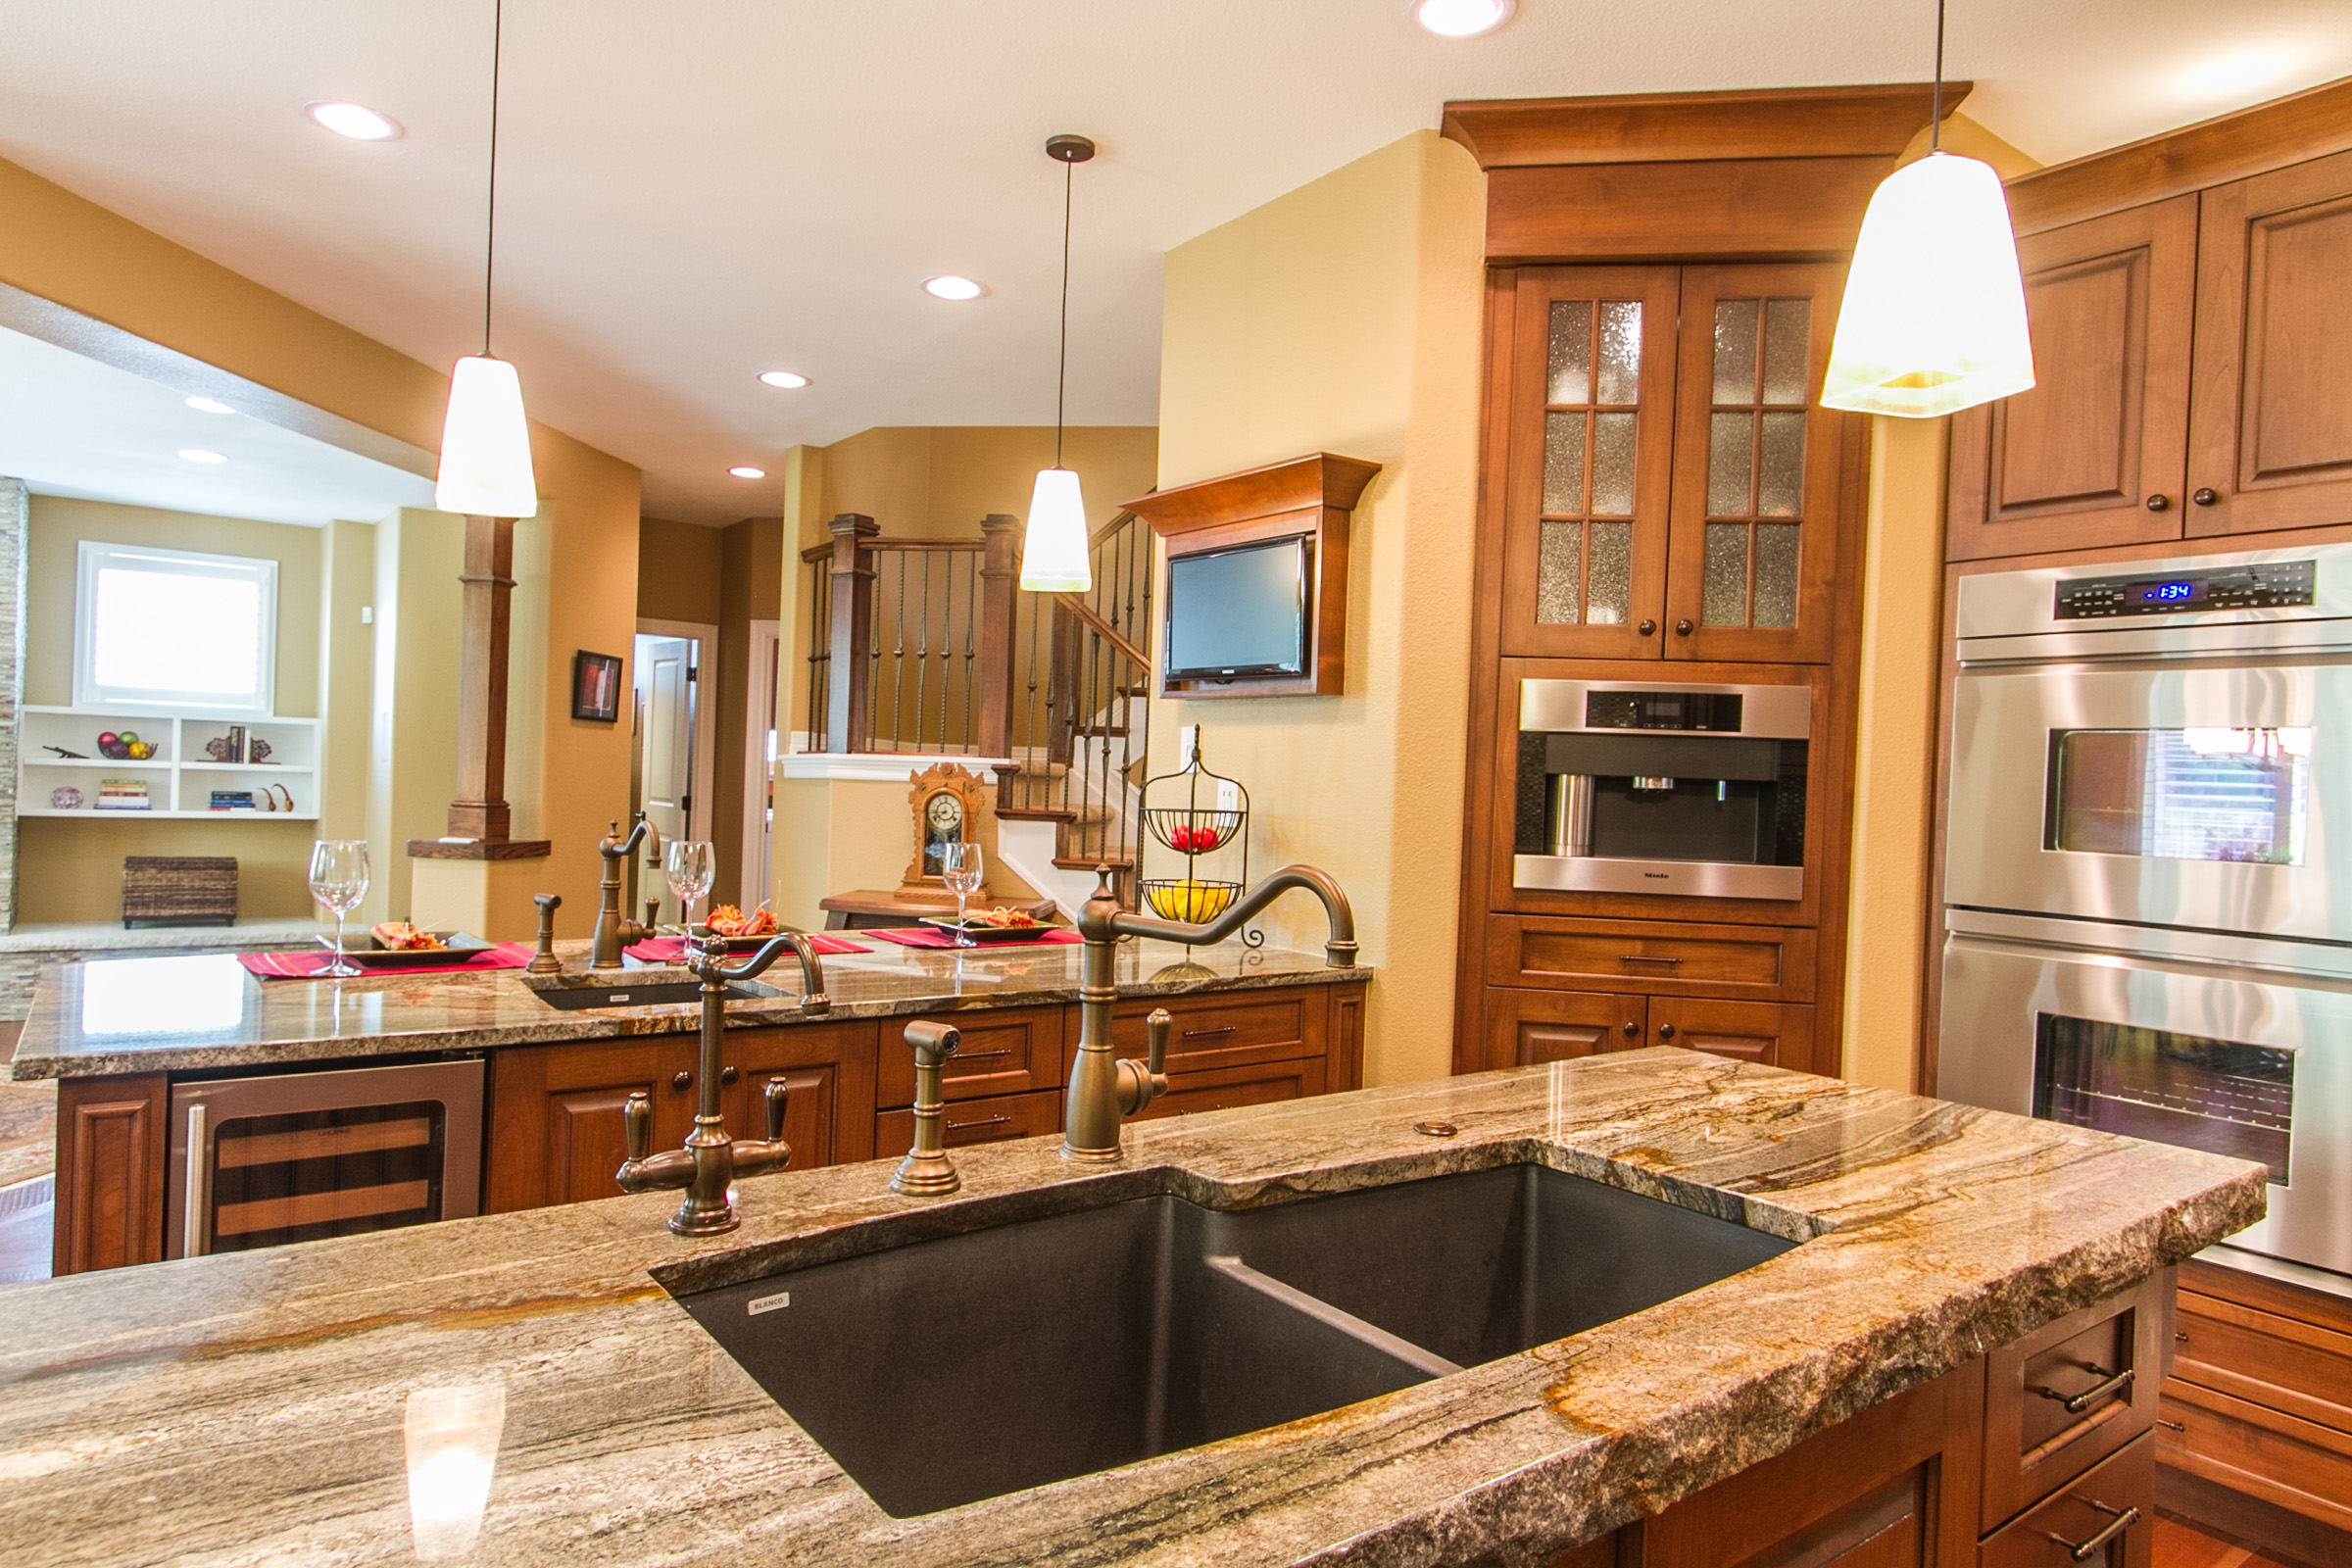 1368068_Thick-Granite-Island-plus-Breakfast-bar_high.jpg